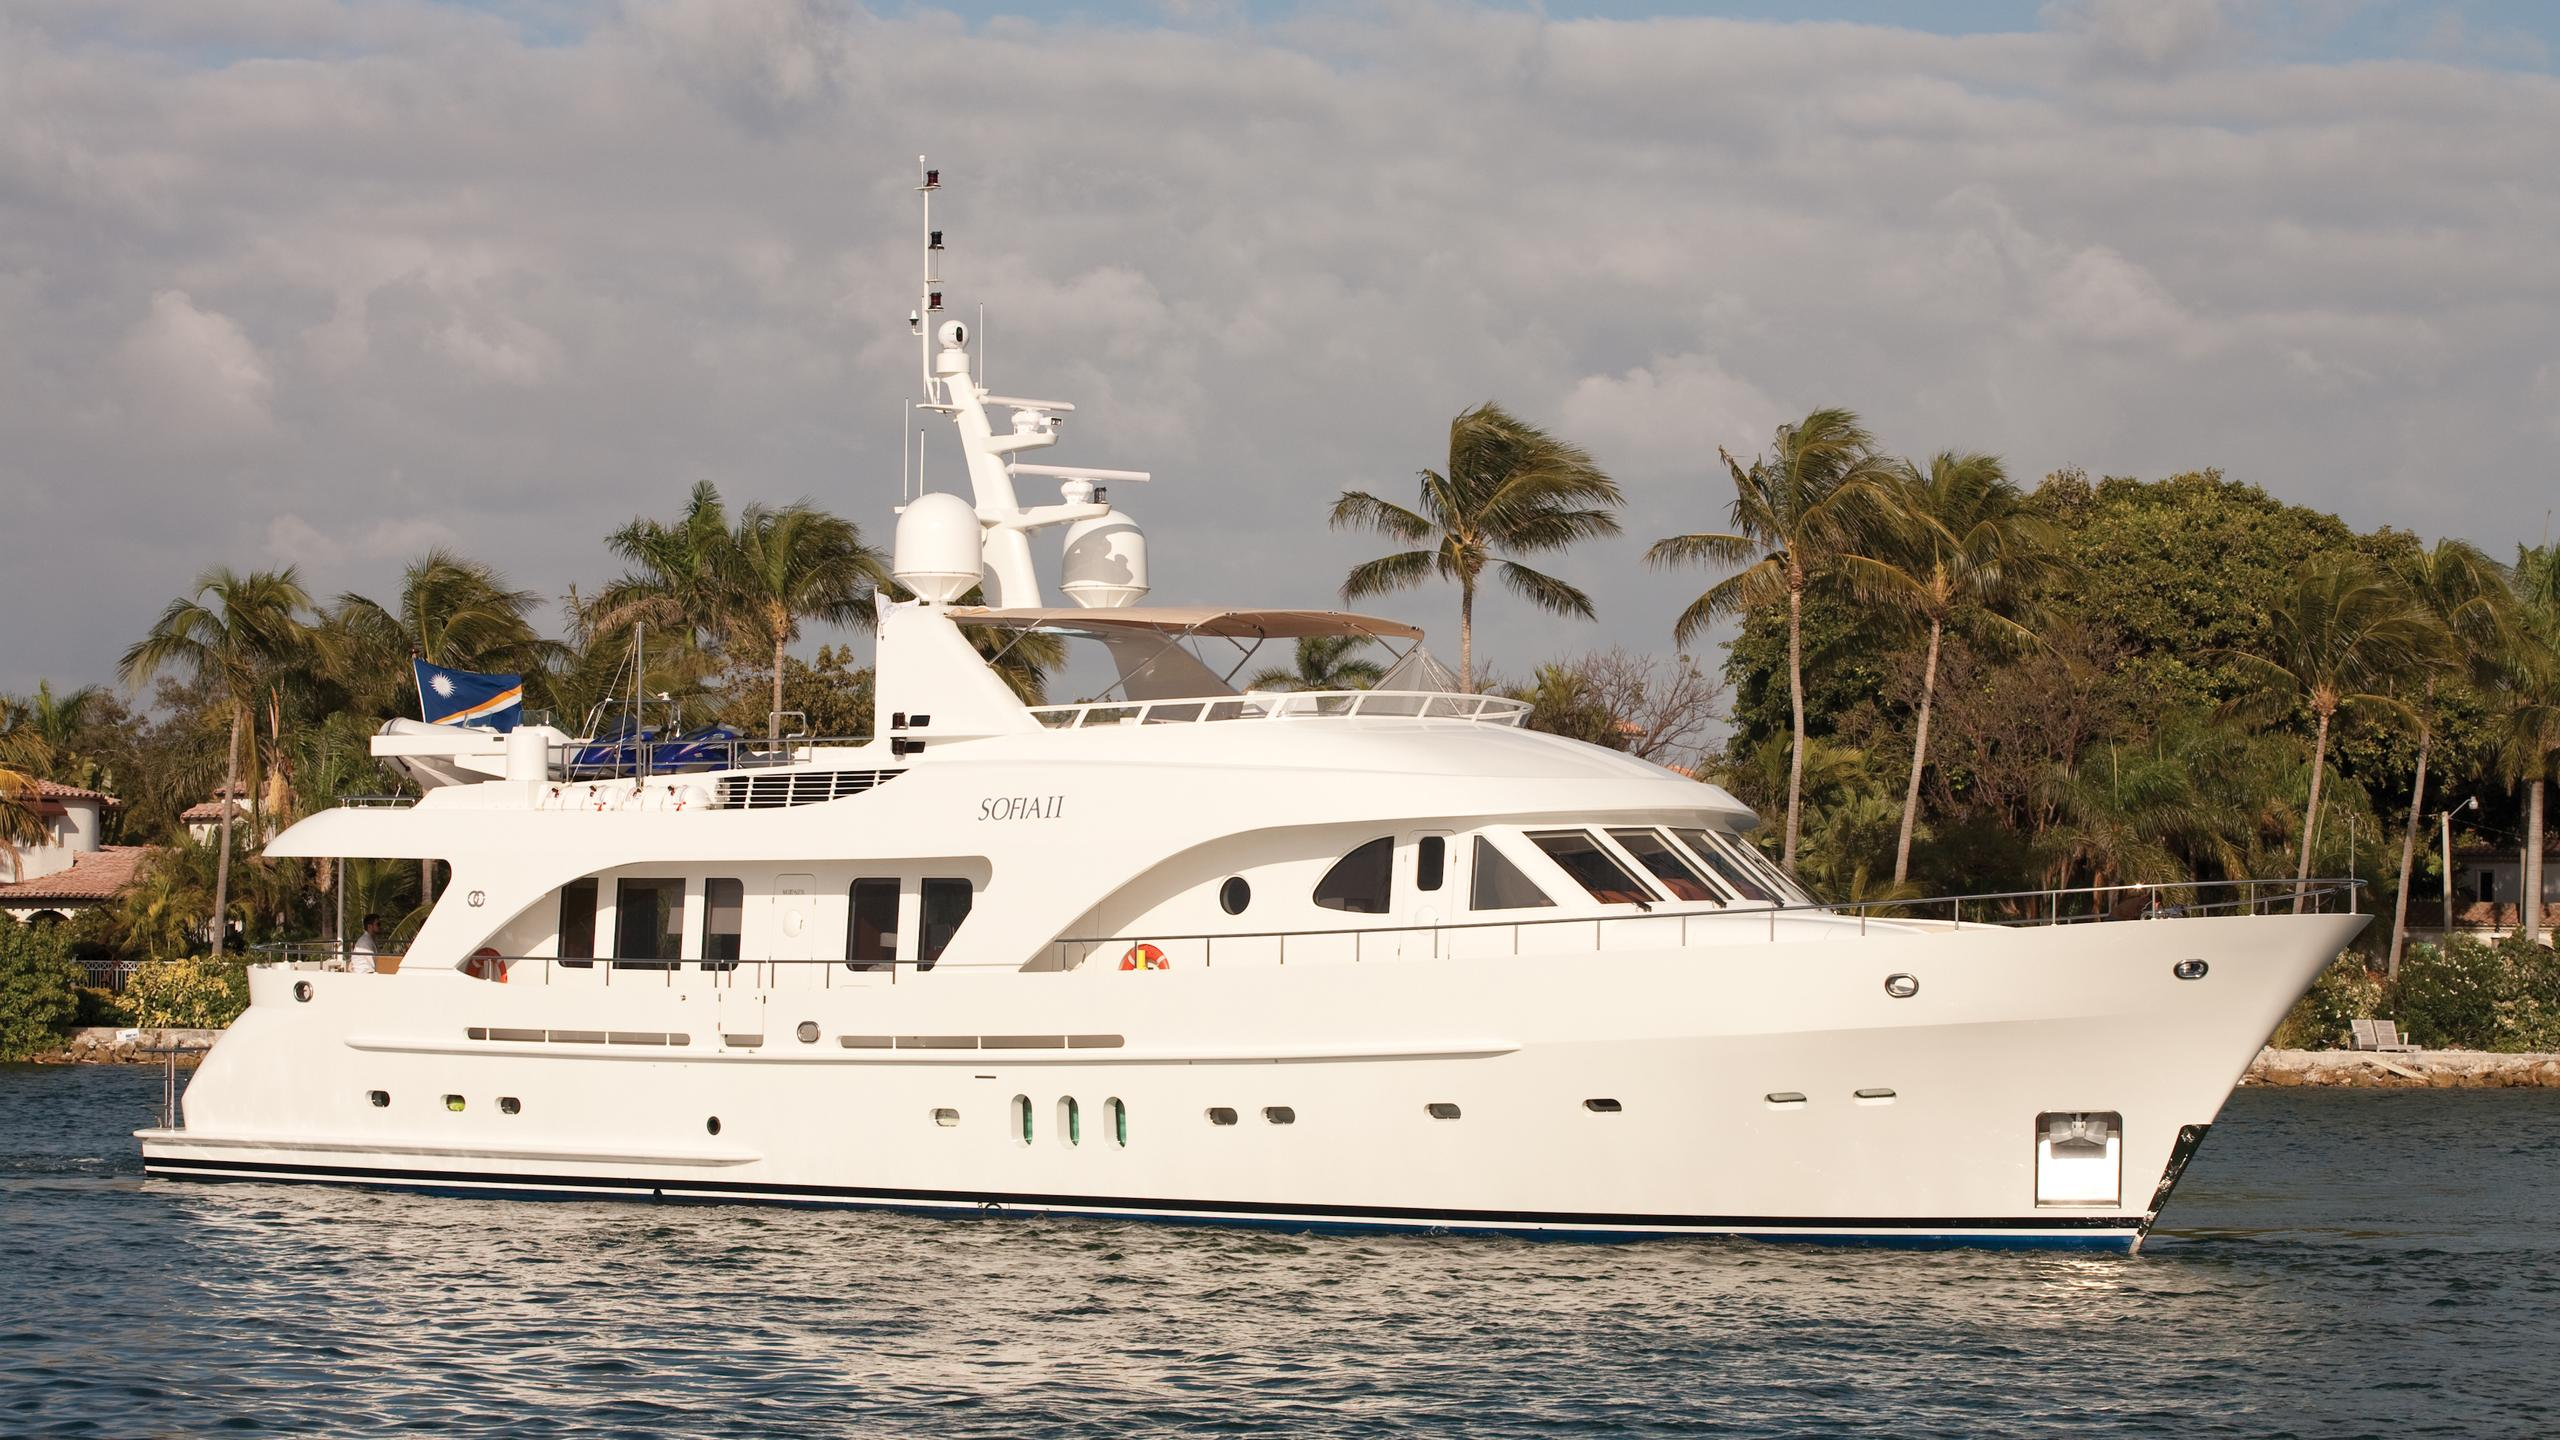 sofia-ii-yacht-for-sale-profile